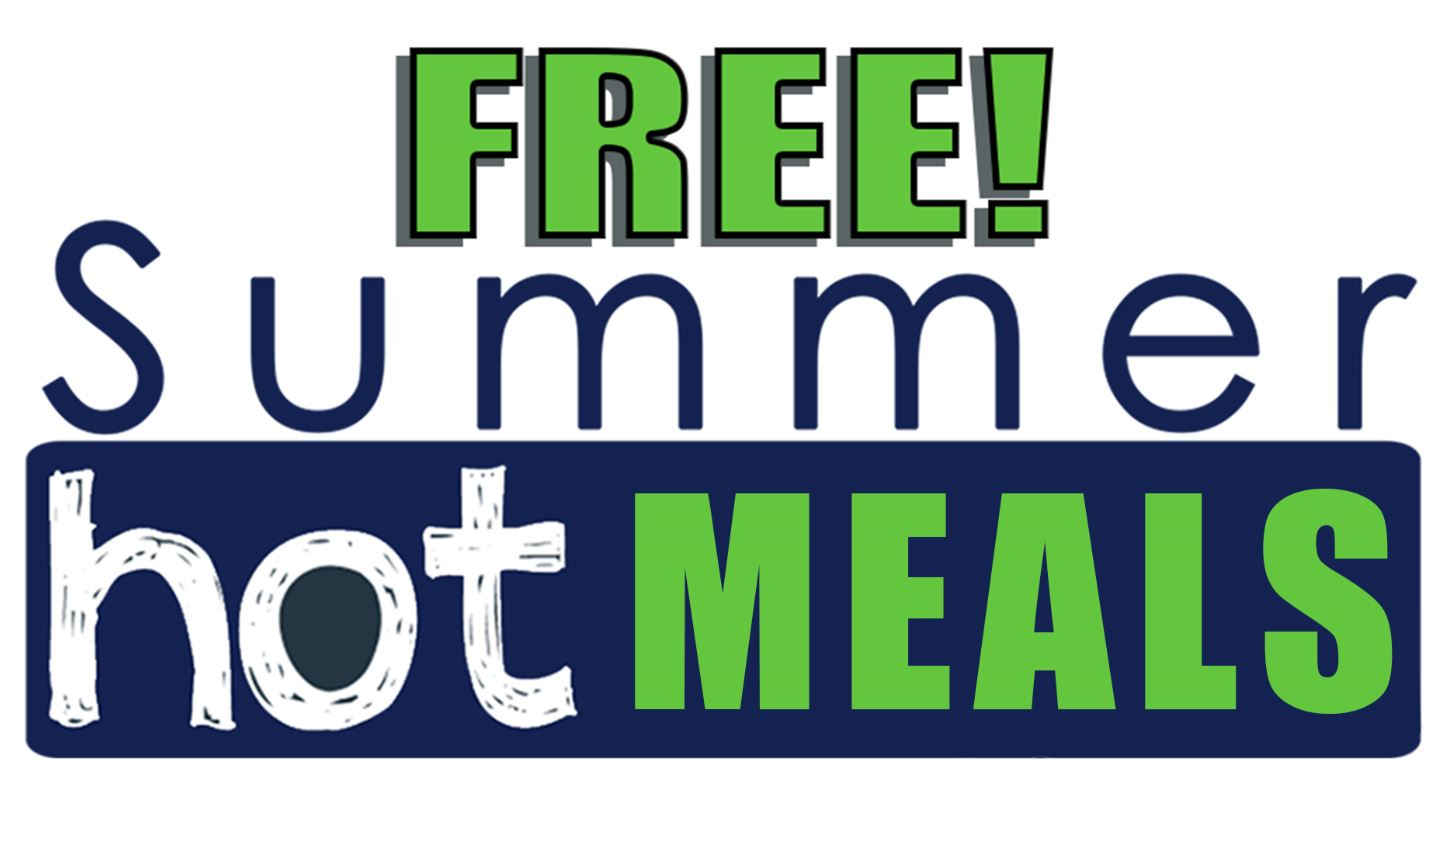 Winton Woods City Schools (WWCS) is again providing free delicious nutritious healthy meals from June 4-July 27.